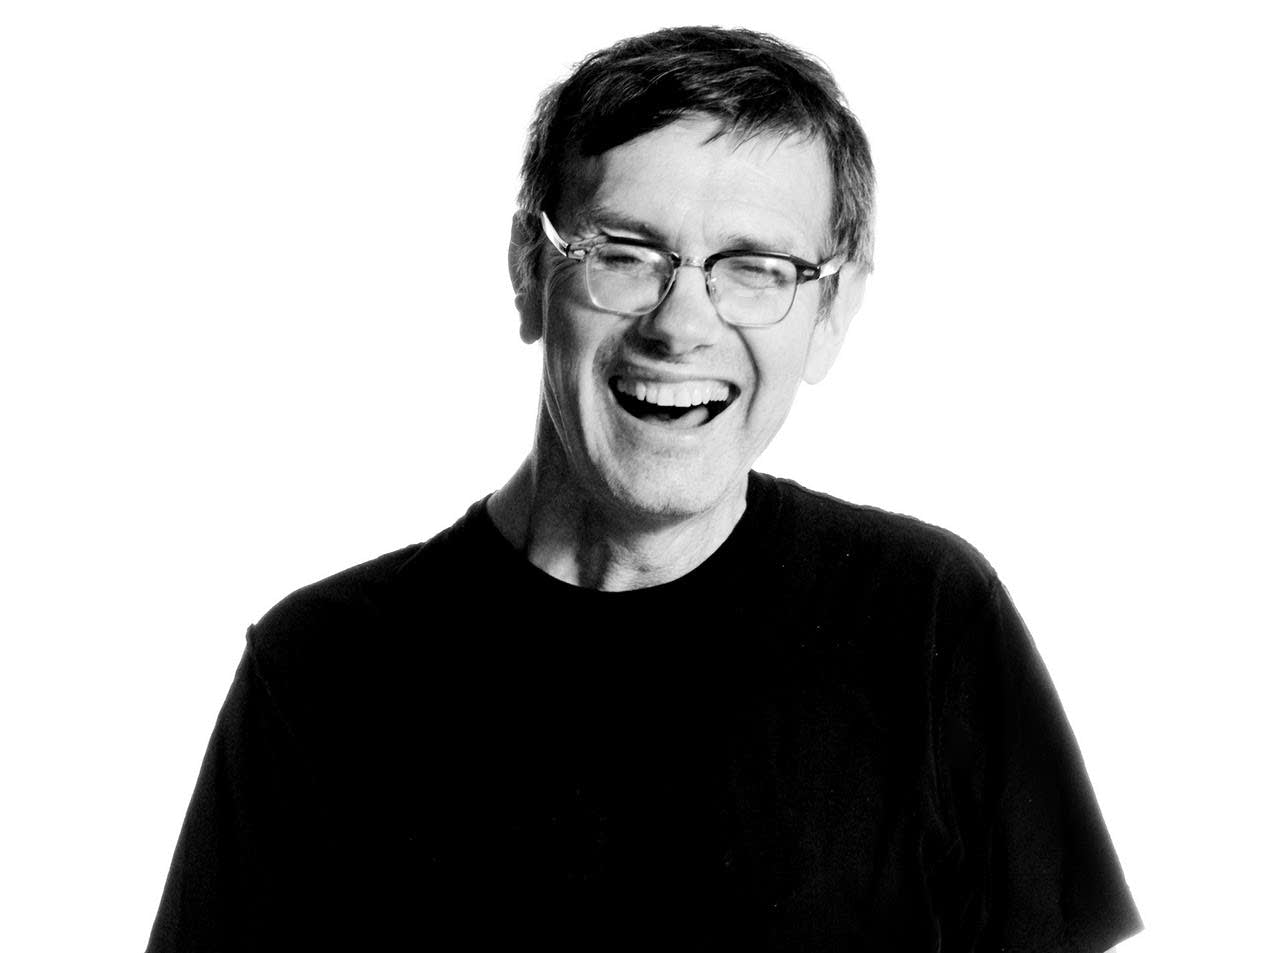 Storyteller and writer Kevin Kling will be honored by Interact Center